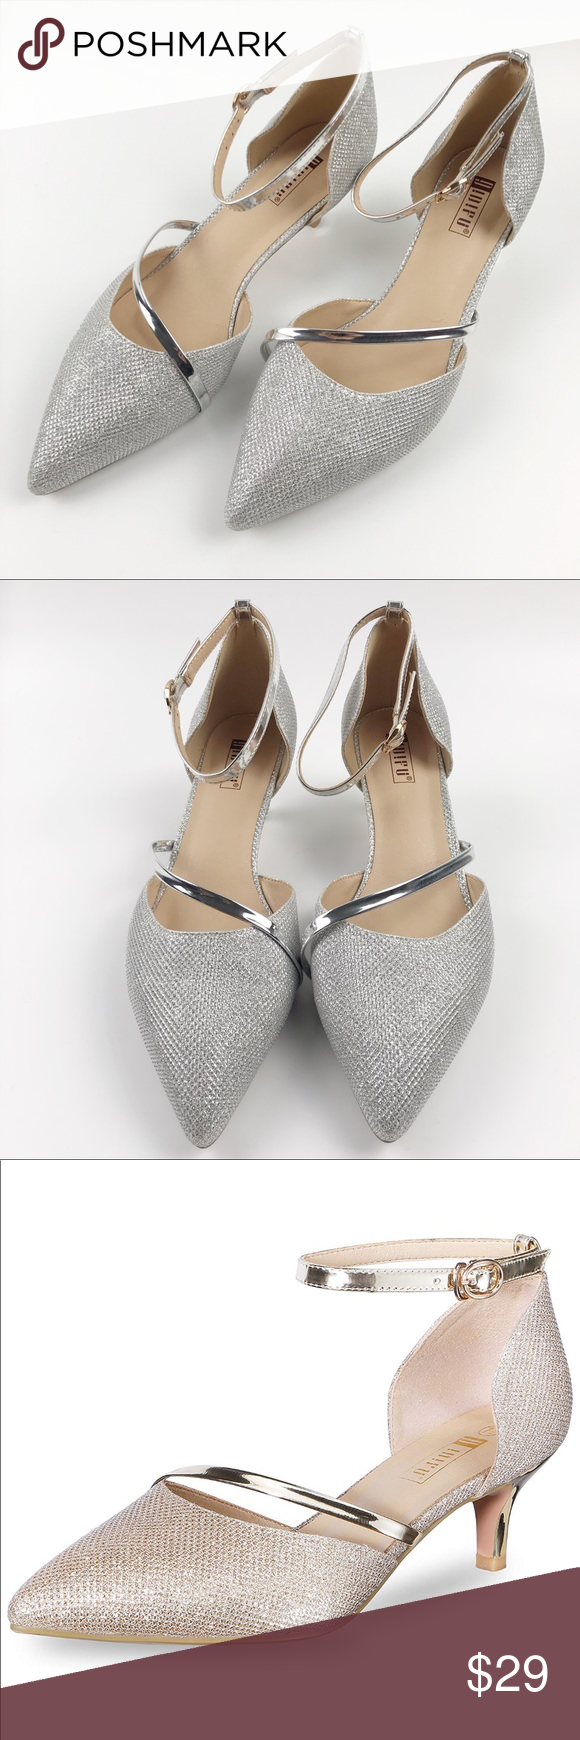 Idifu Silver Shine Dress Party Shoes Ankle Strap Idifu Silver Sparkle And Shine Dress Party Shoes With Kitten Heel An Party Shoes Shoes Women Heels Ankle Strap